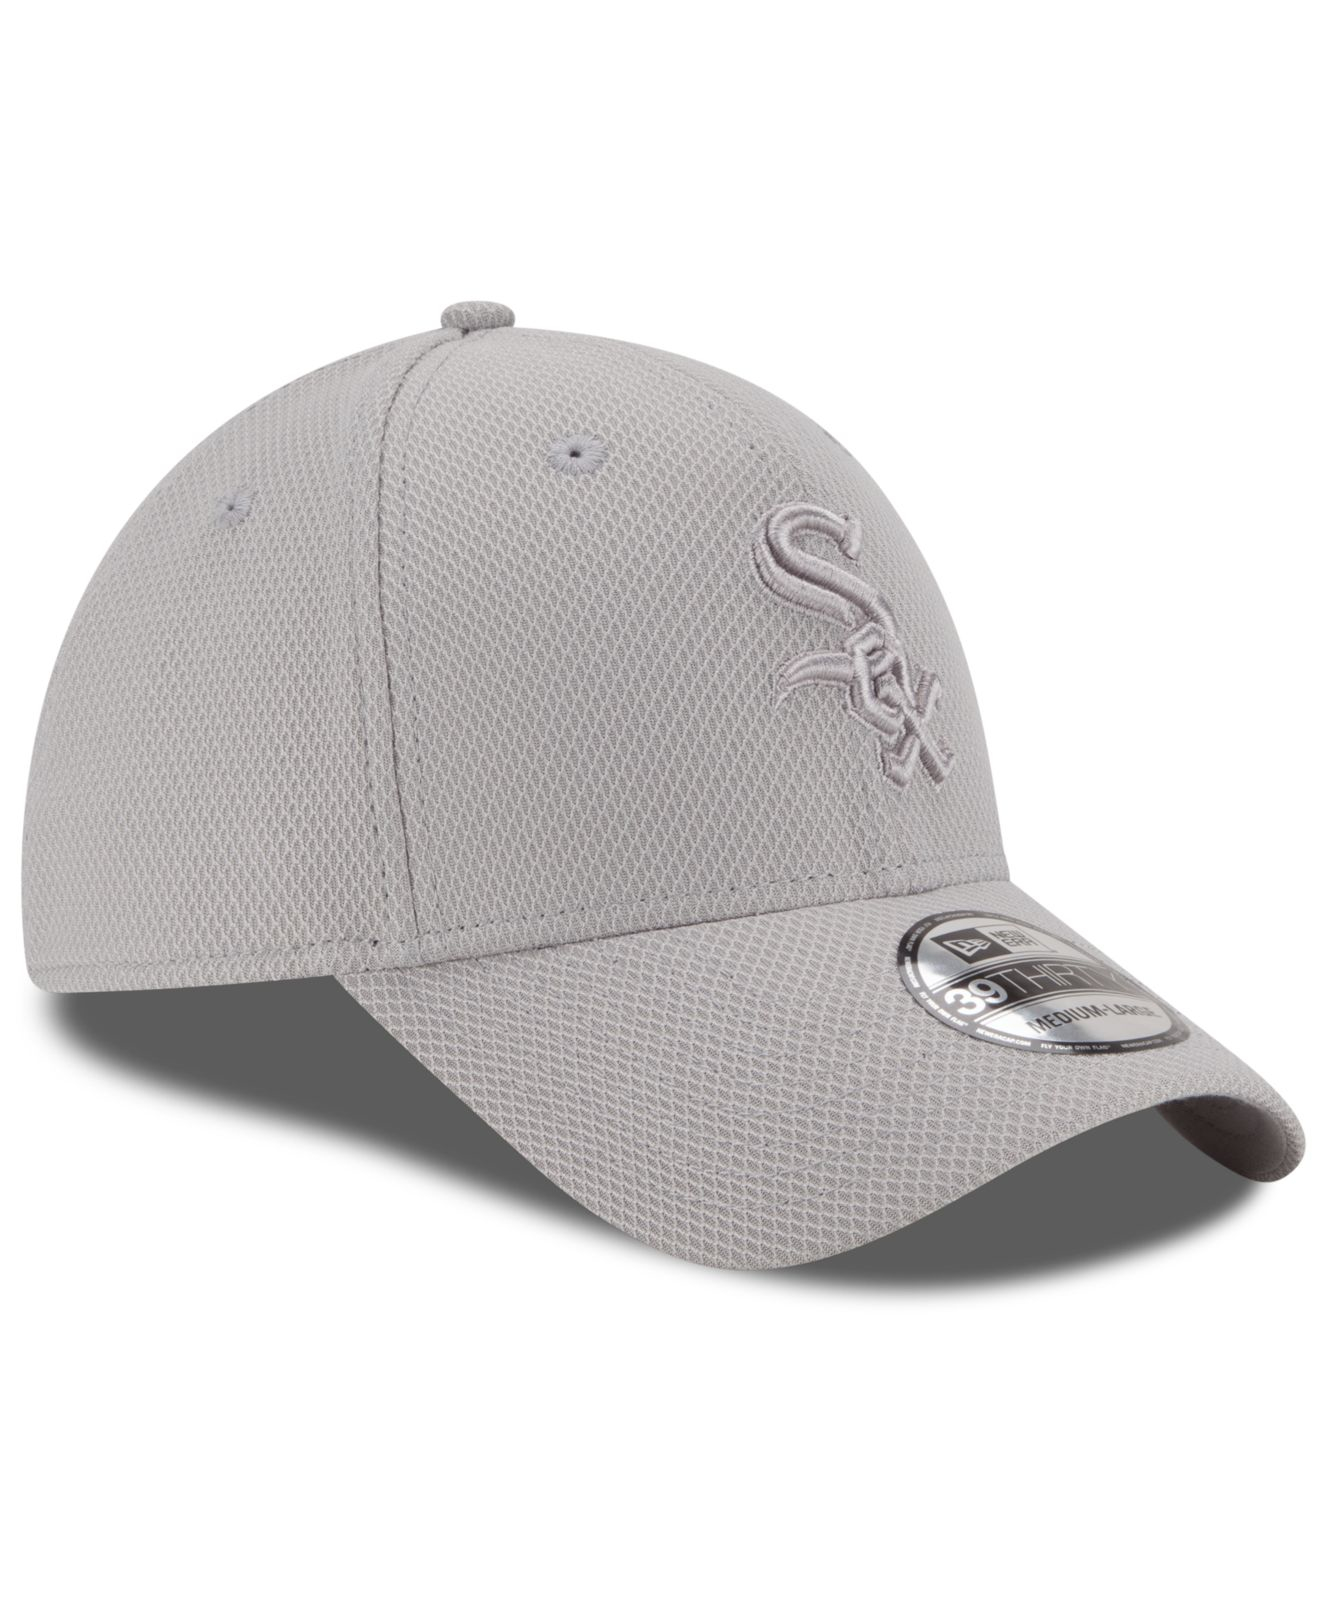 wholesale dealer 492f9 a8eb9 ... spain lyst ktz chicago white sox tone tech 39thirty cap in gray for men  35359 72dd6